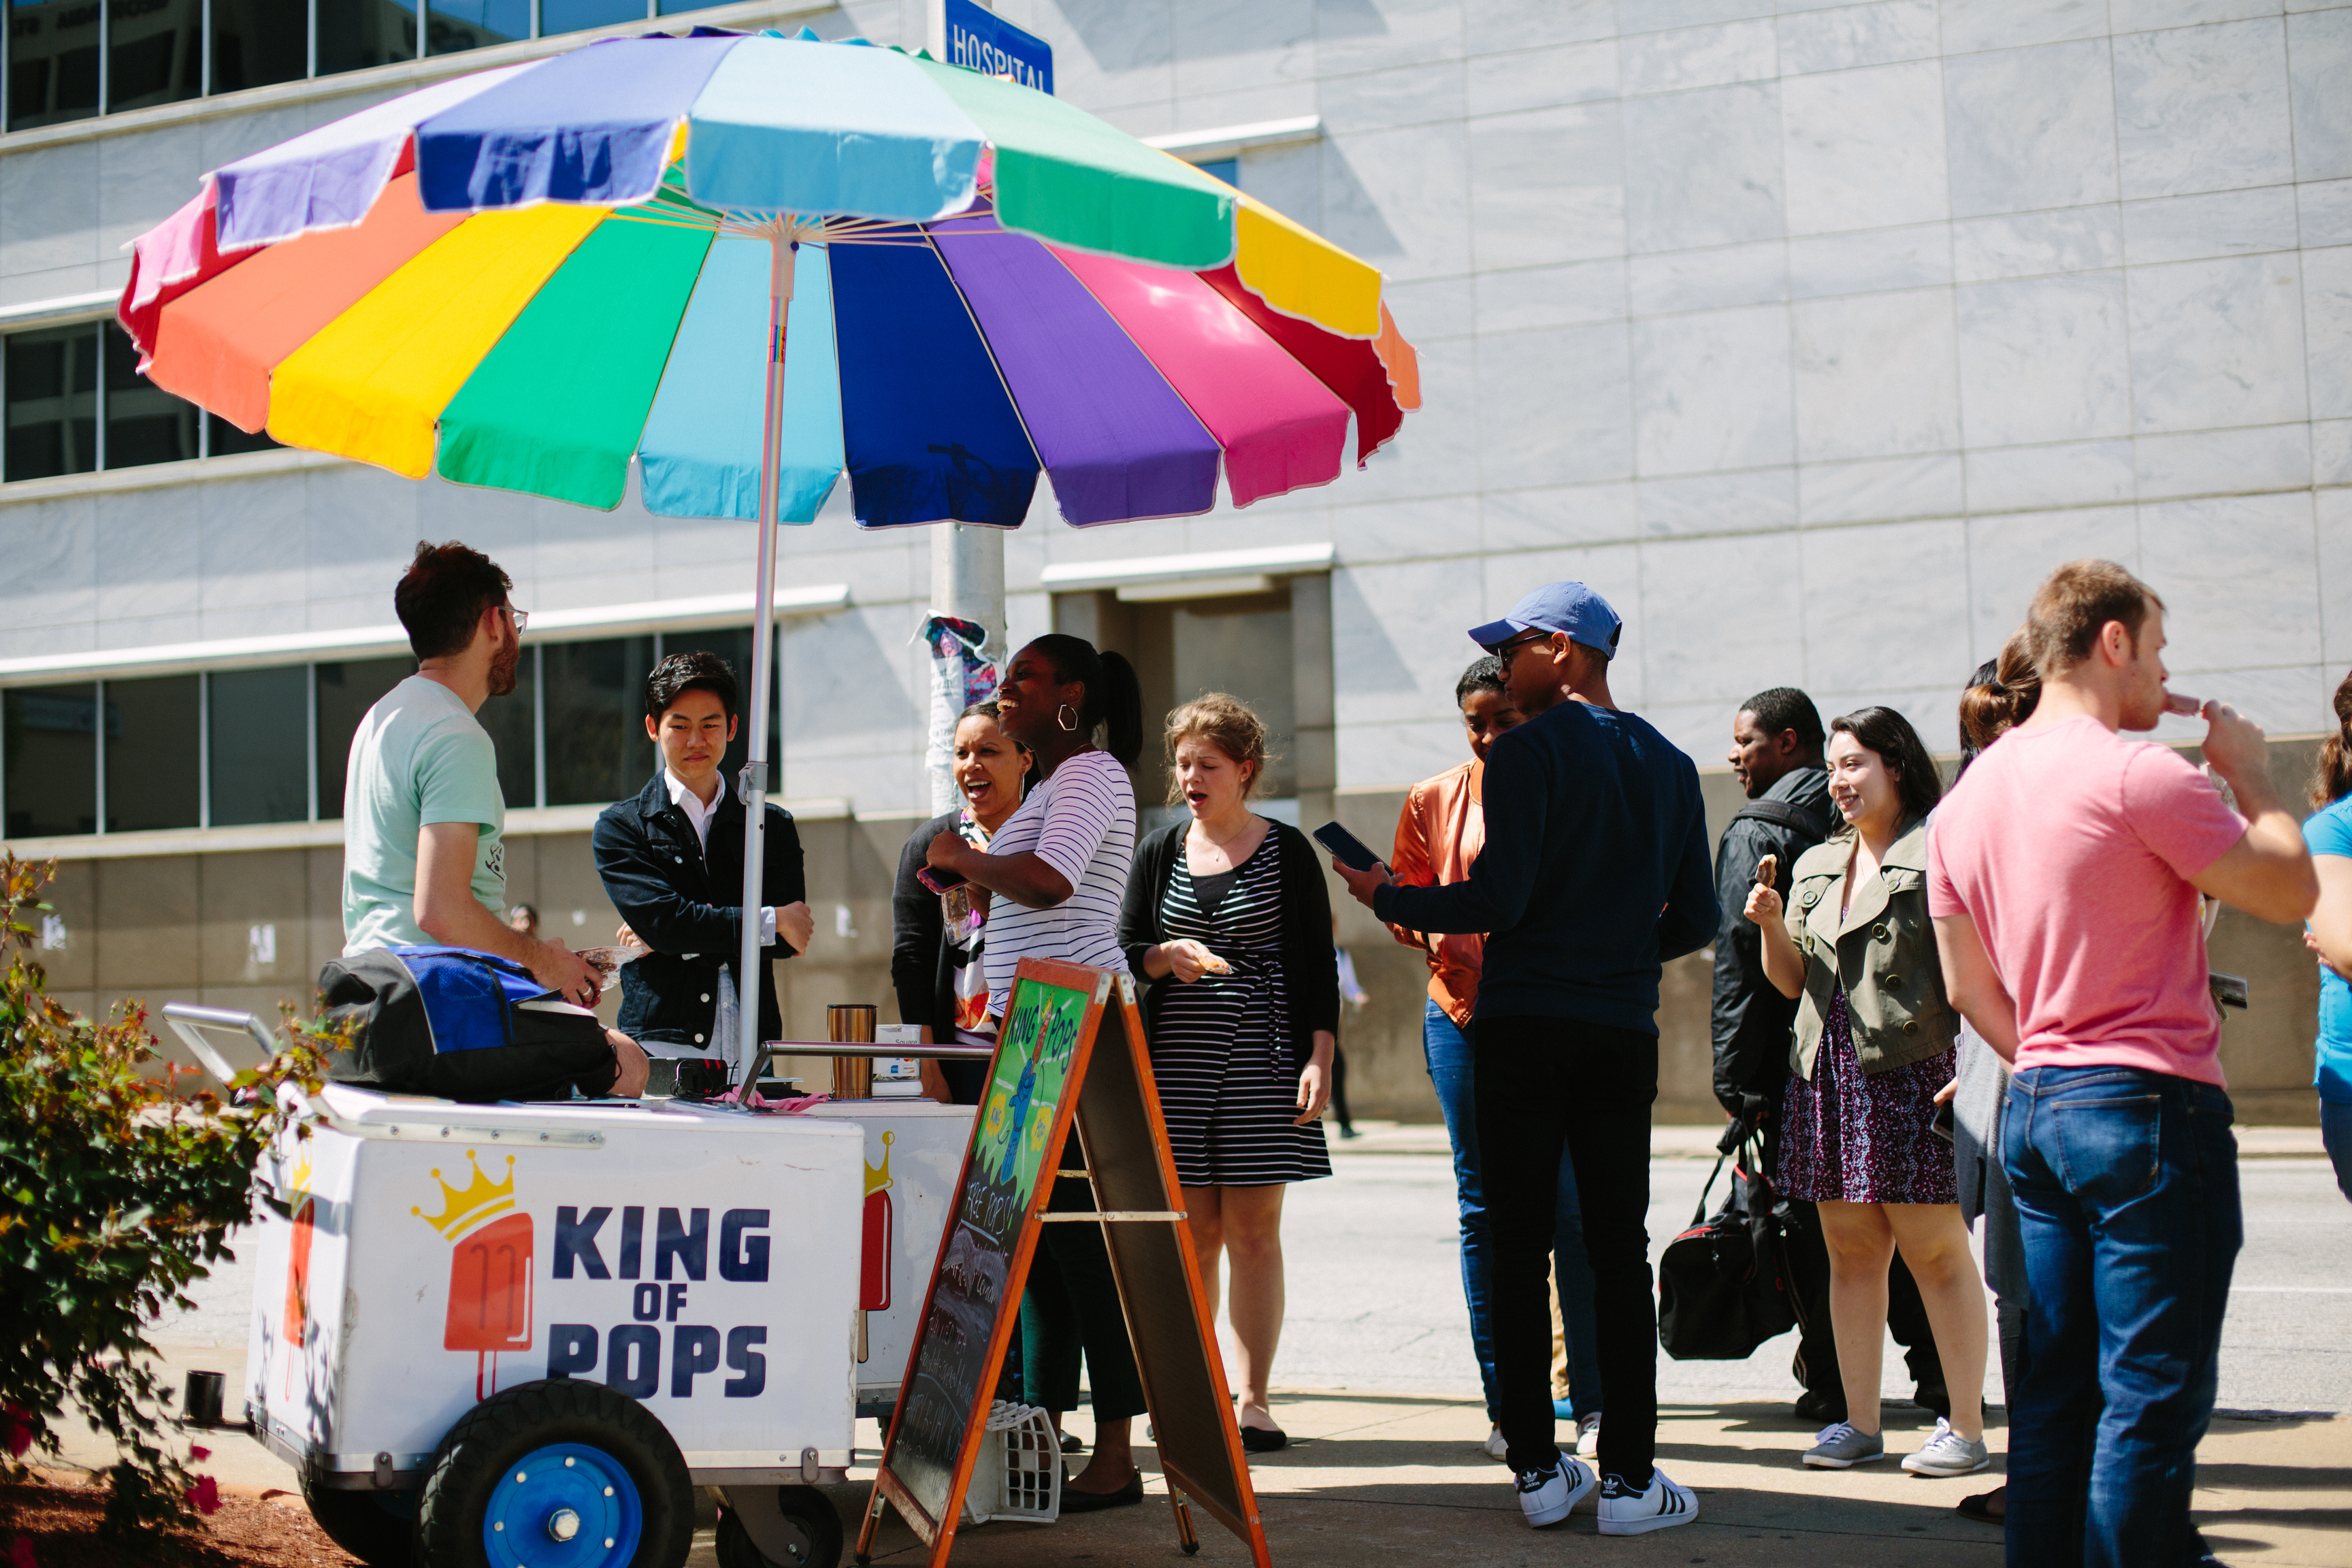 Atlanta King of Pops Stand